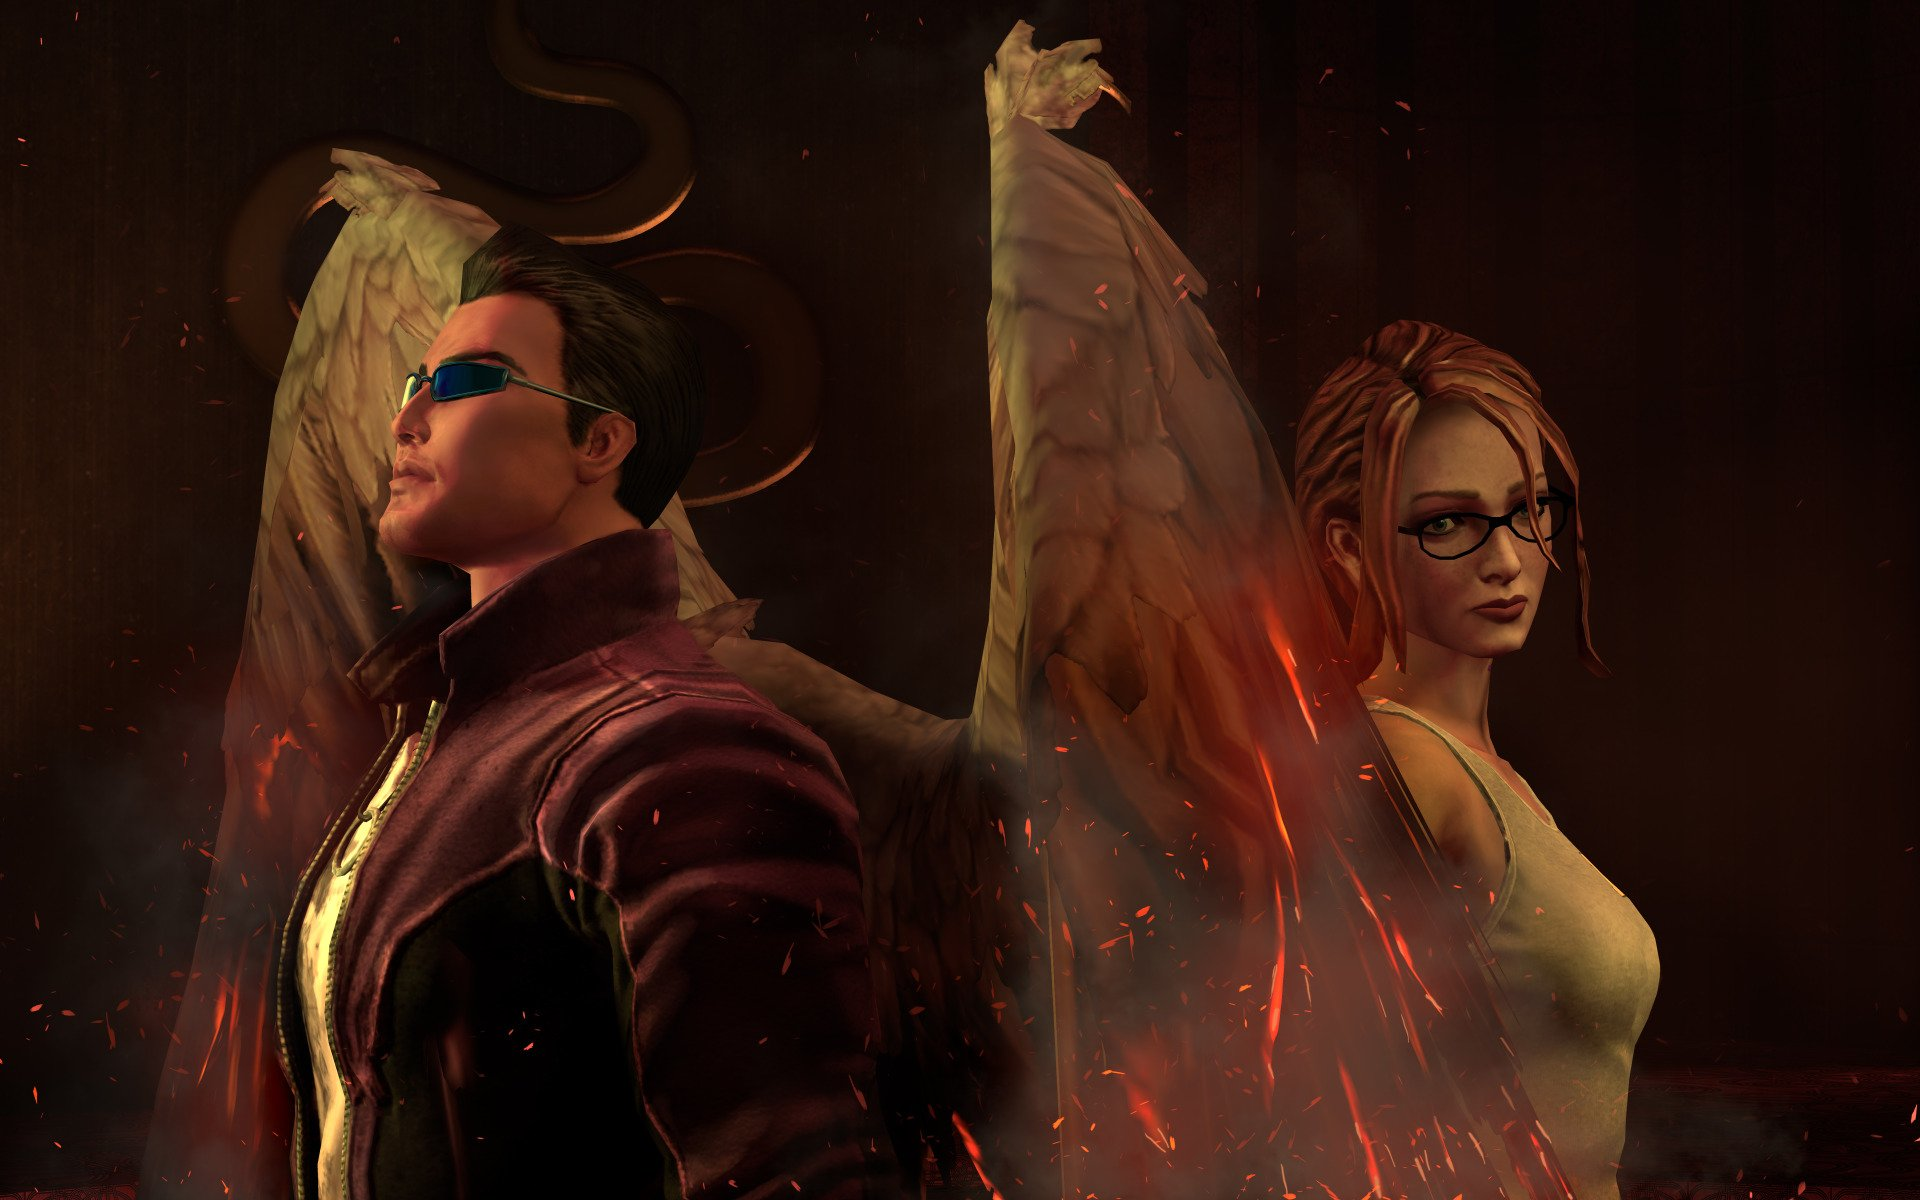 saints_row_gate_out_of_hell-2608749.jpg